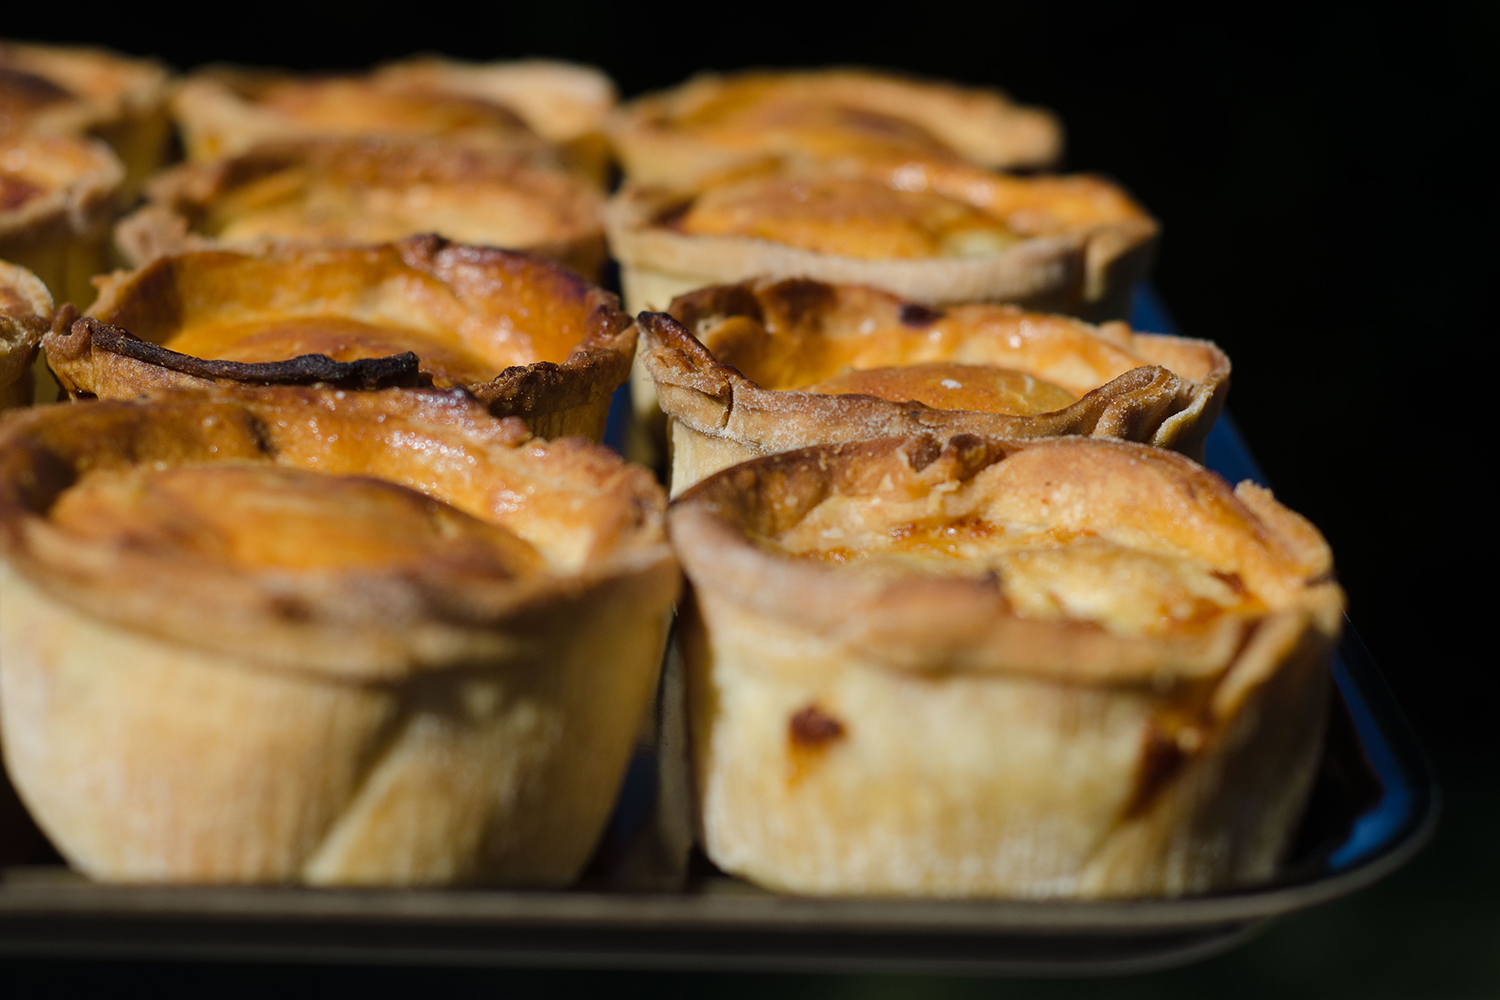 Pork-pie-close-up.jpg